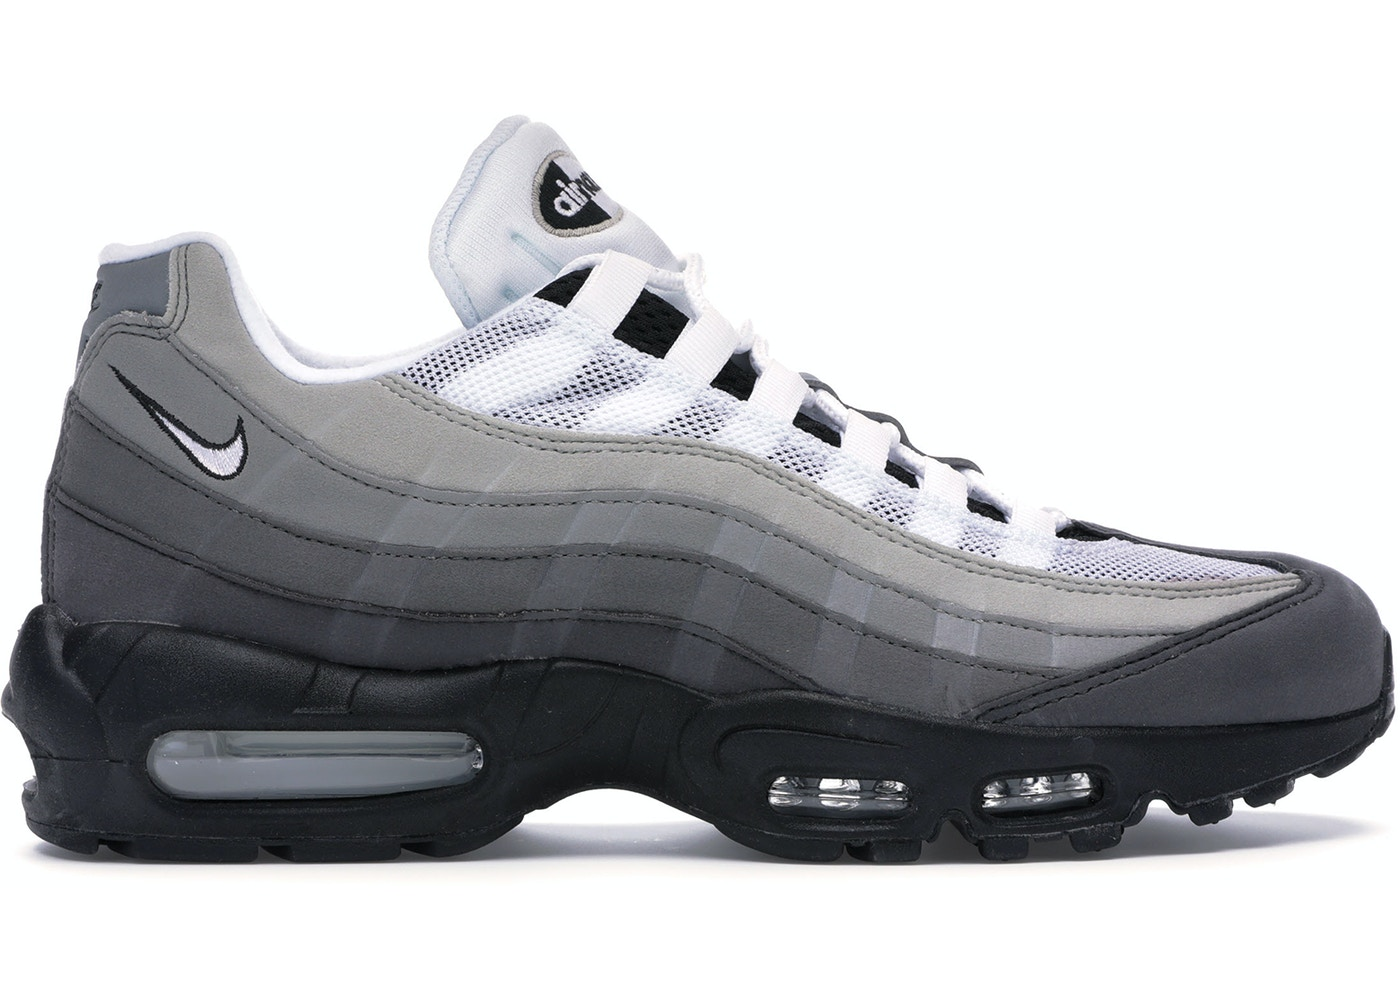 eef5d8da266a Buy Nike Air Max 95 Shoes   Deadstock Sneakers